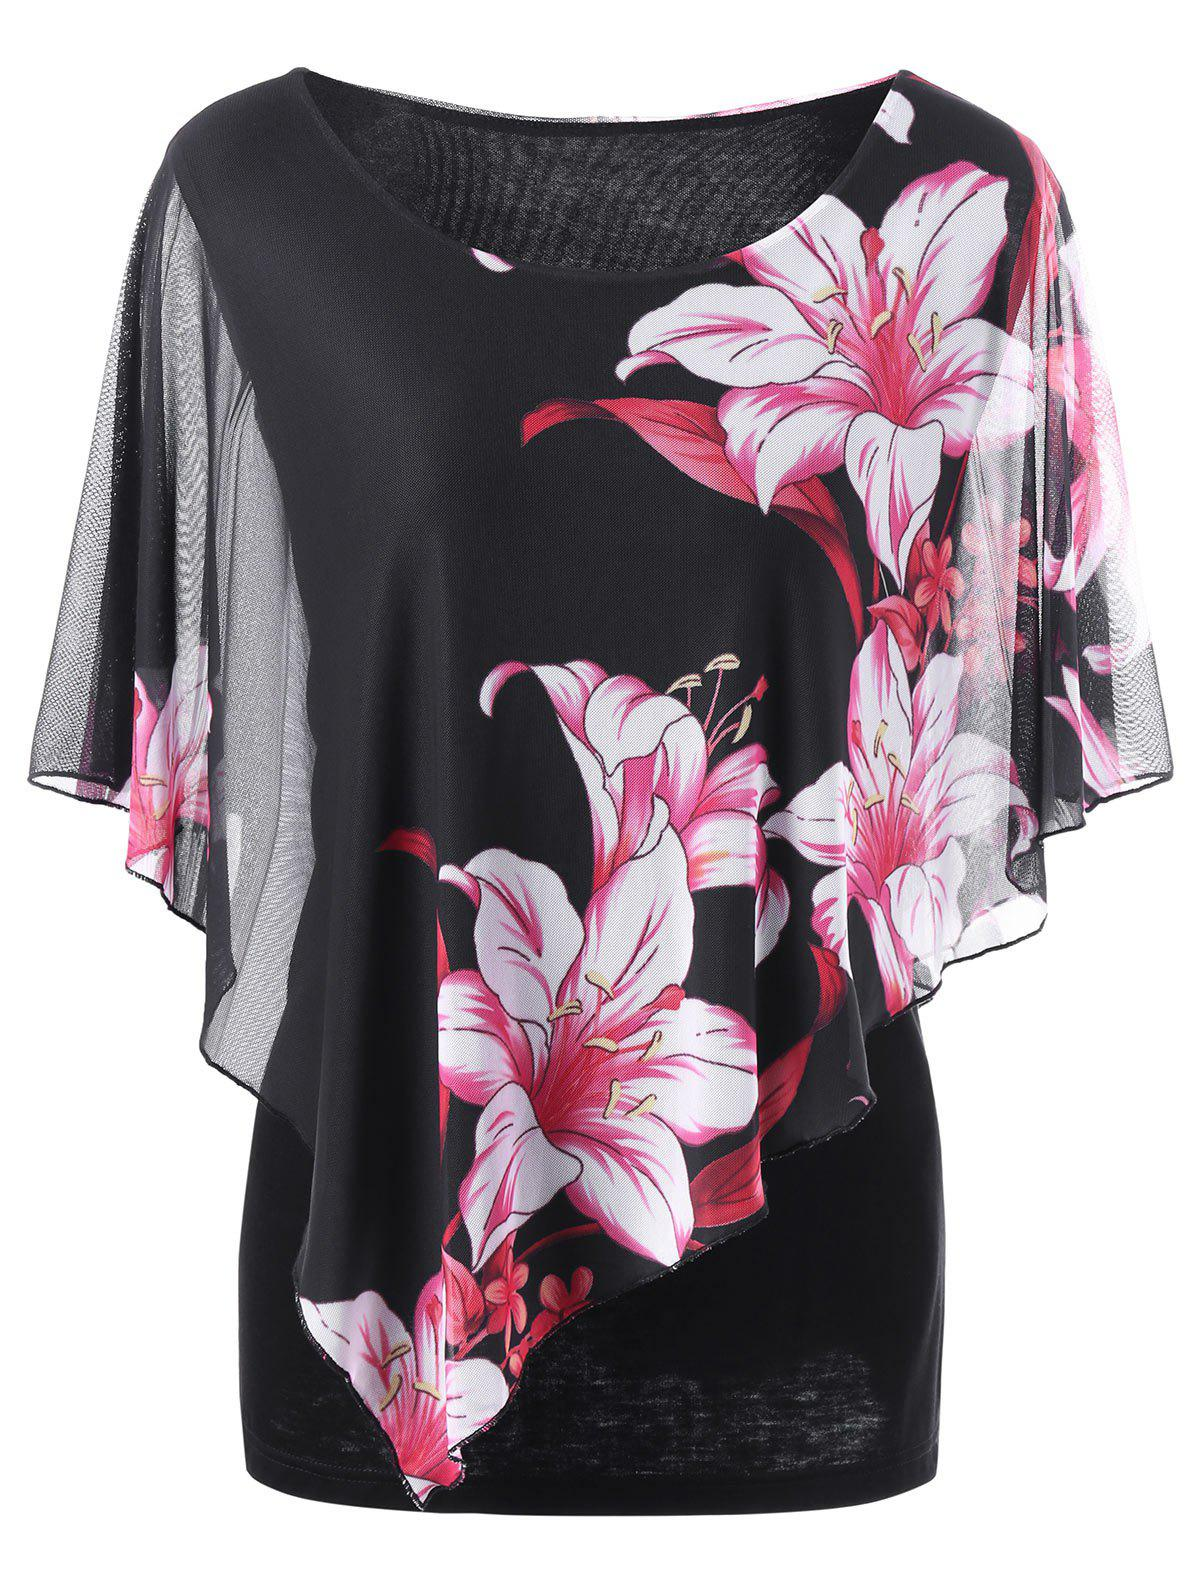 Overlay Floral Casual Plus Size T-ShirtWOMEN<br><br>Size: 2XL; Color: BLACK; Material: Nylon,Spandex; Shirt Length: Long; Sleeve Length: Short; Collar: Scoop Neck; Style: Casual; Season: Summer; Pattern Type: Floral; Weight: 0.3800kg; Package Contents: 1 x T-Shirt;